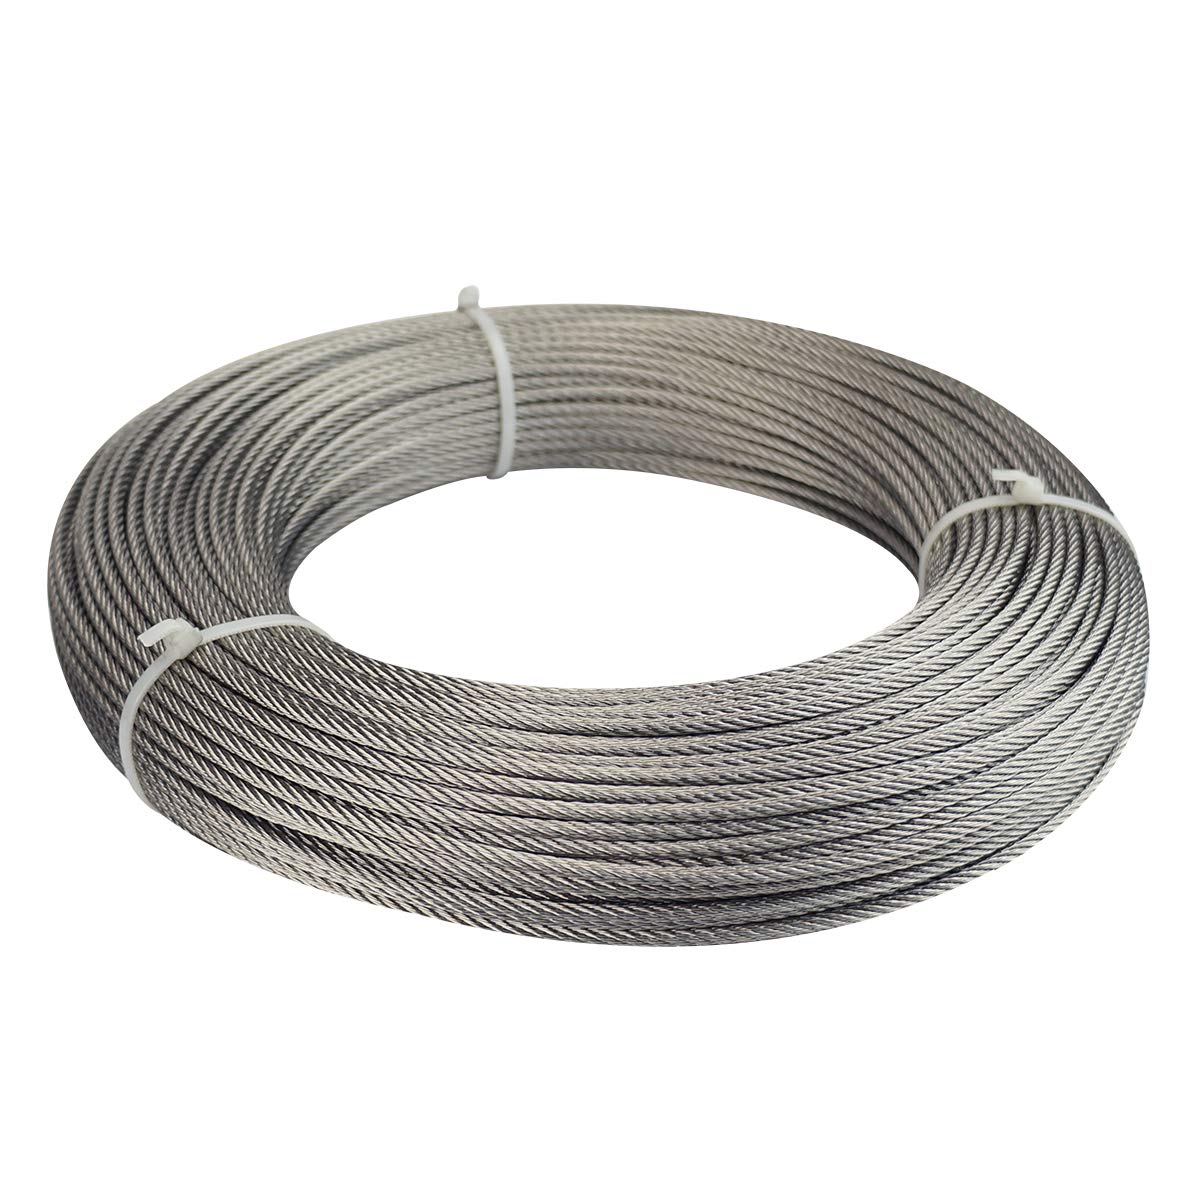 Muzata Max 75% OFF 165ft Stainless Steel Cable Wire 16'' 1 Dealing full price reduction Lig Rope Outdoor